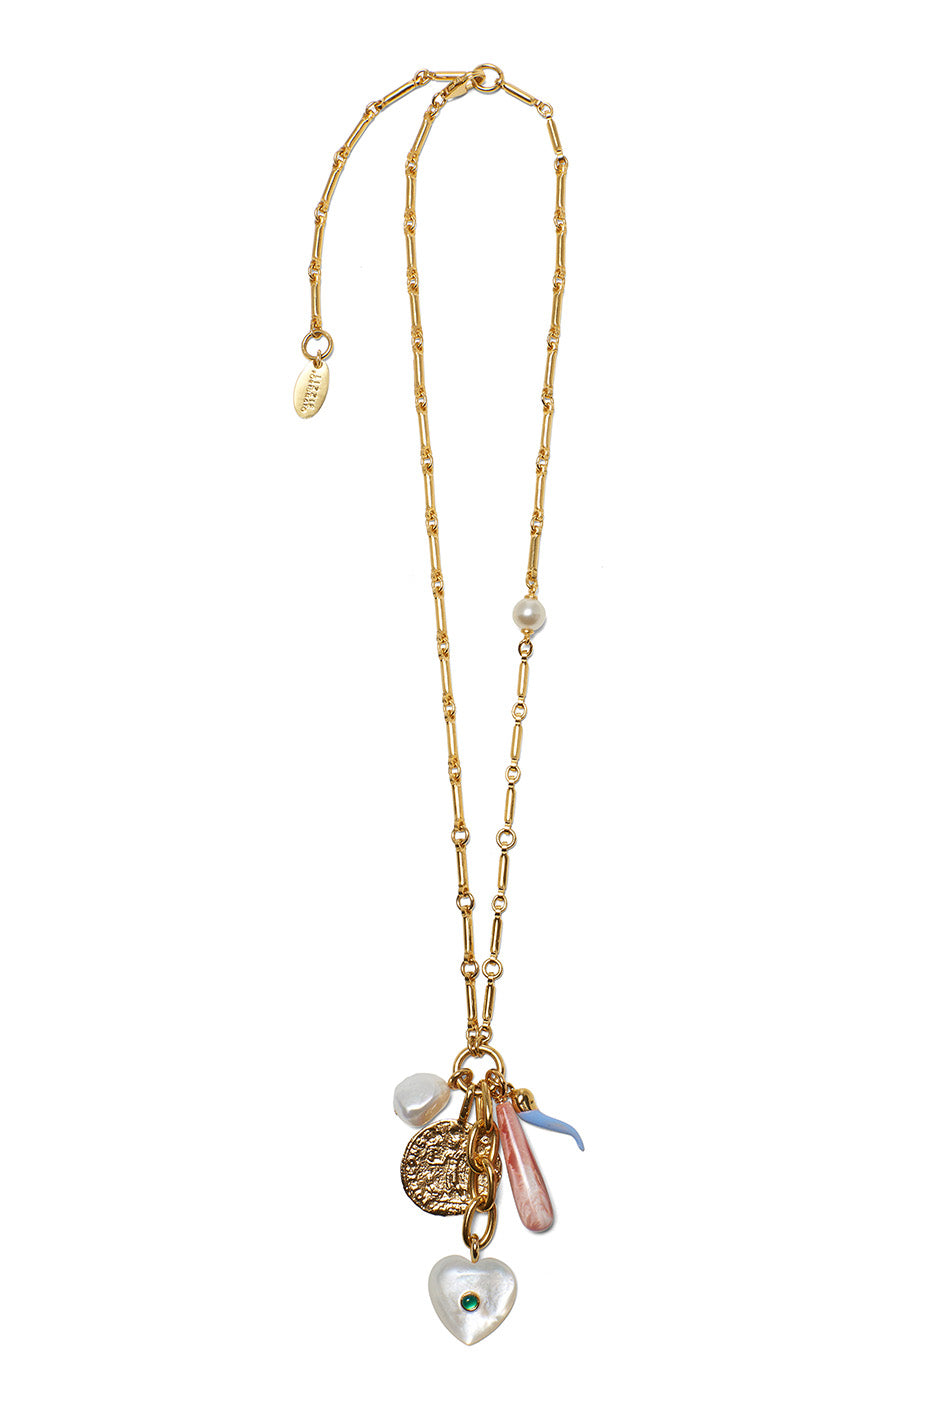 Lizzie Fortunato - amalfi charm necklace